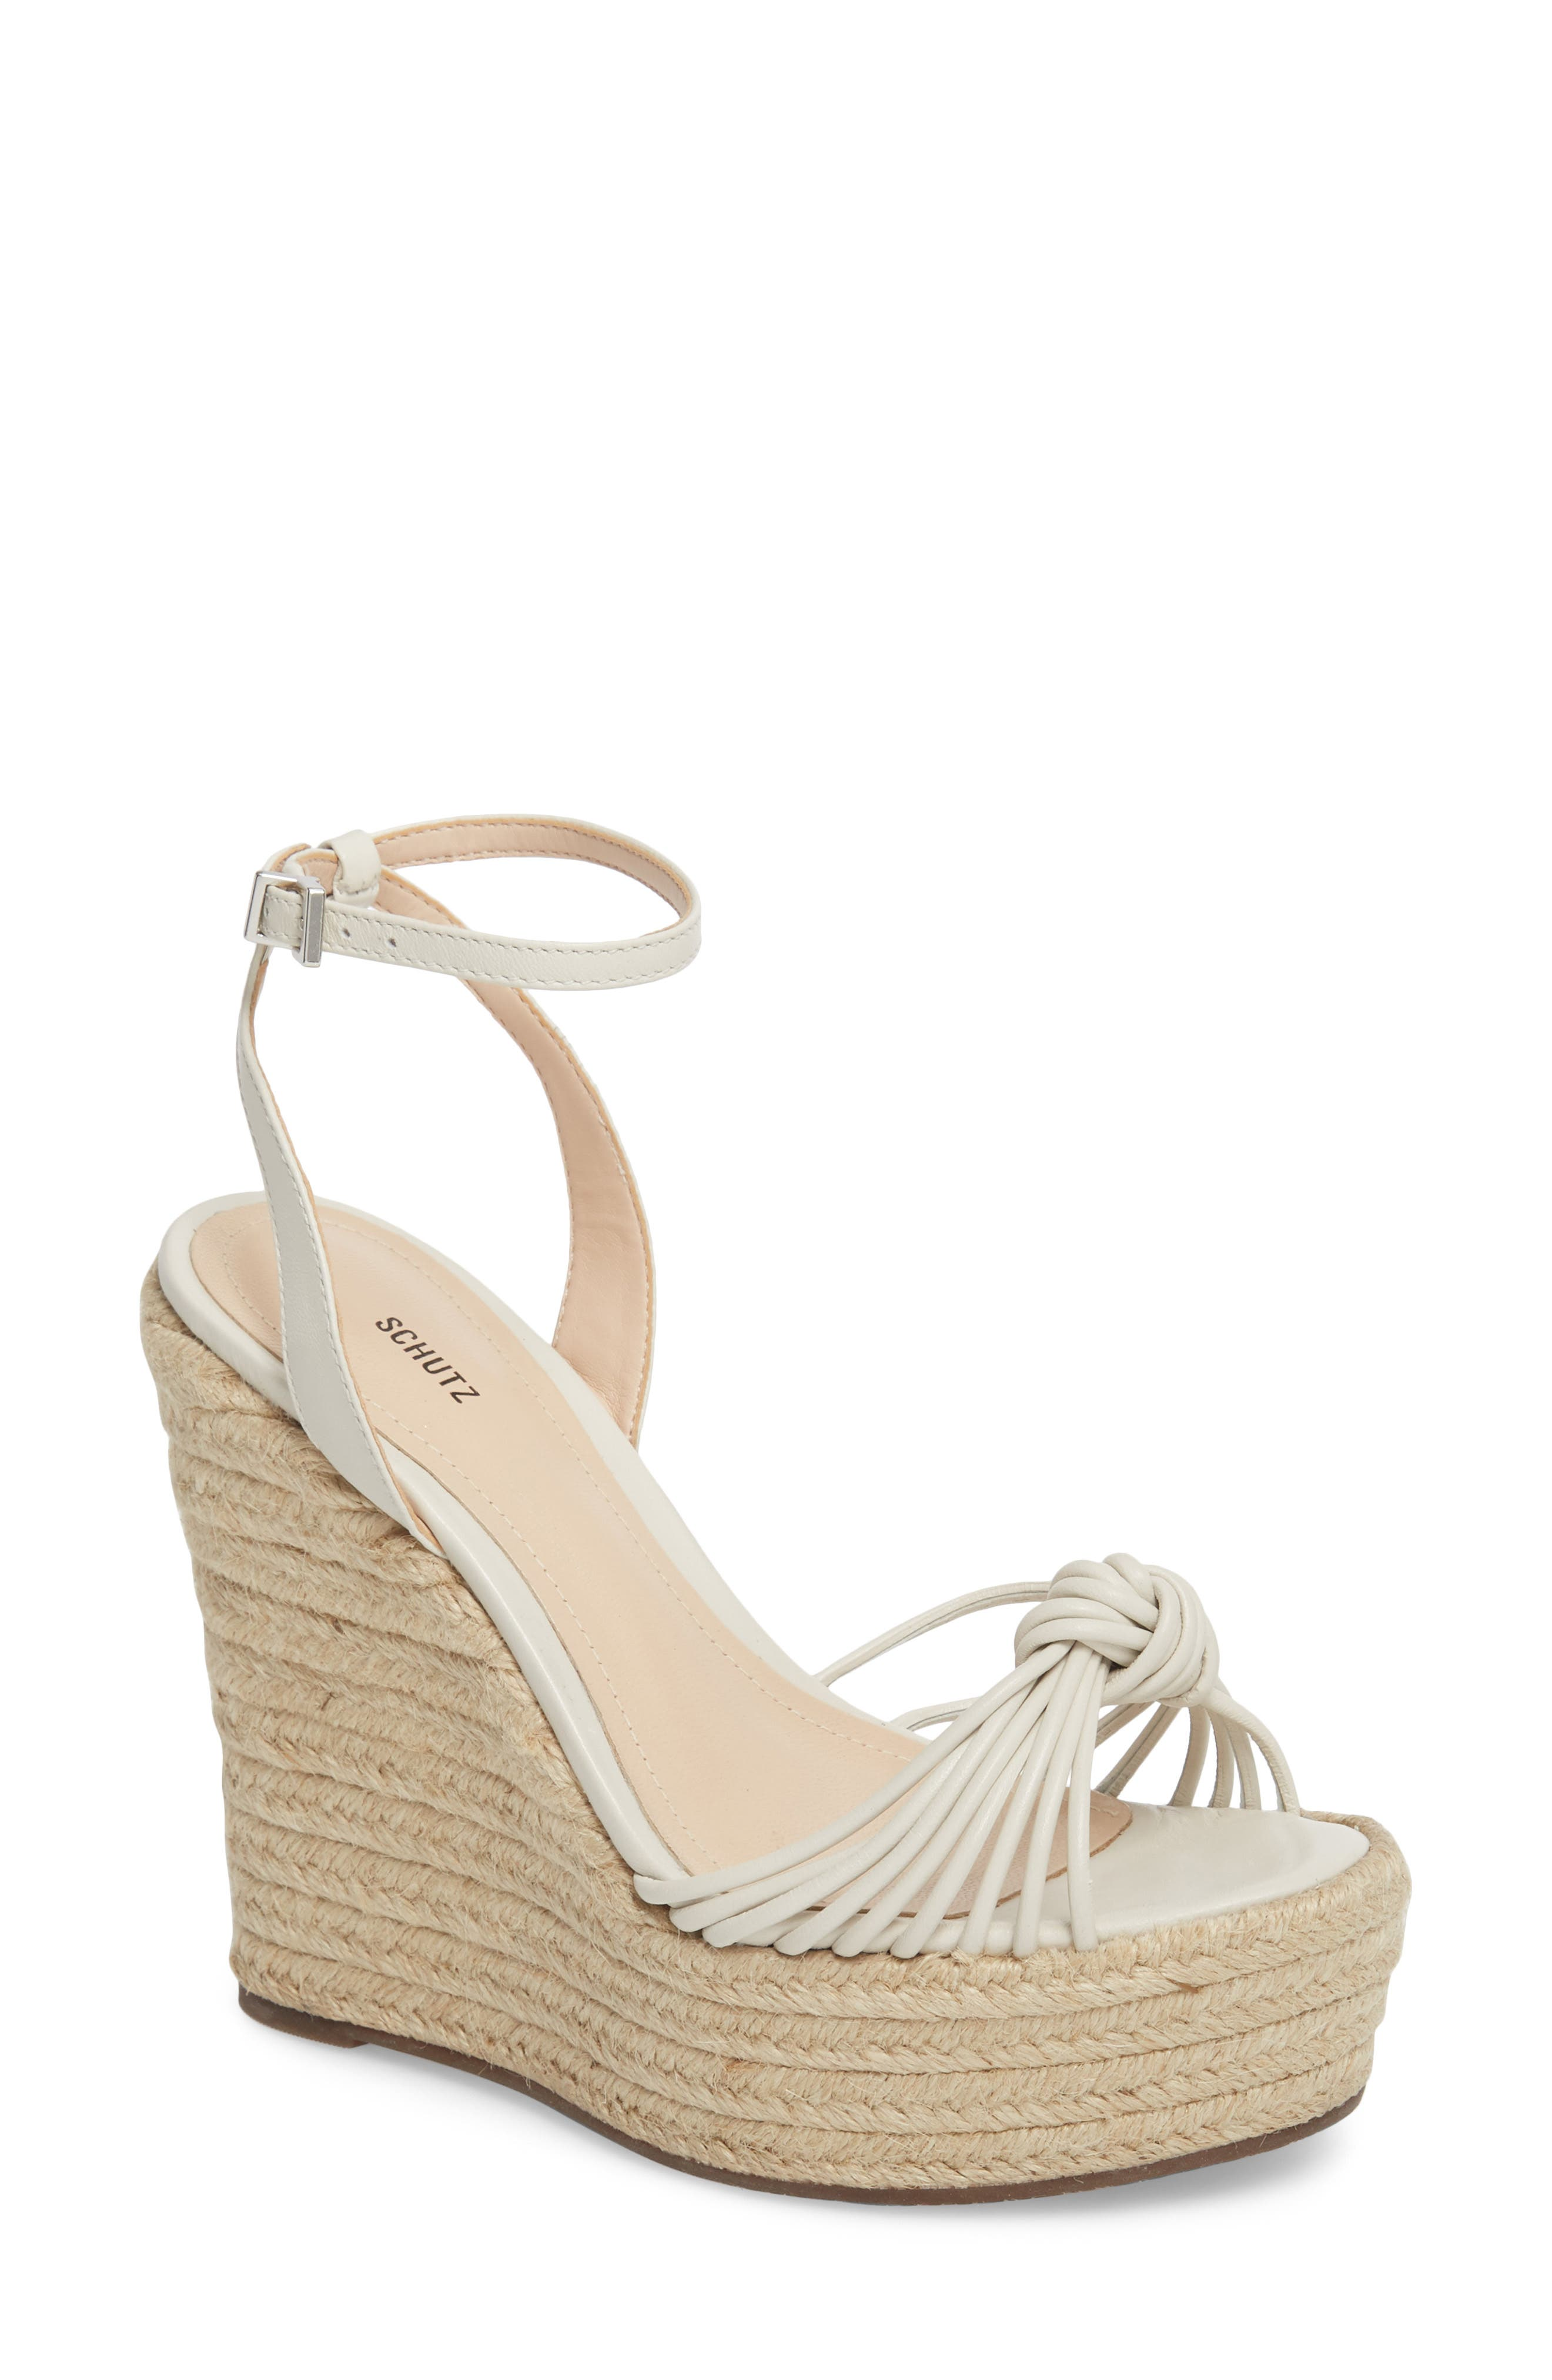 Gianne Platform Wedge Sandal,                         Main,                         color, PEARL FABRIC